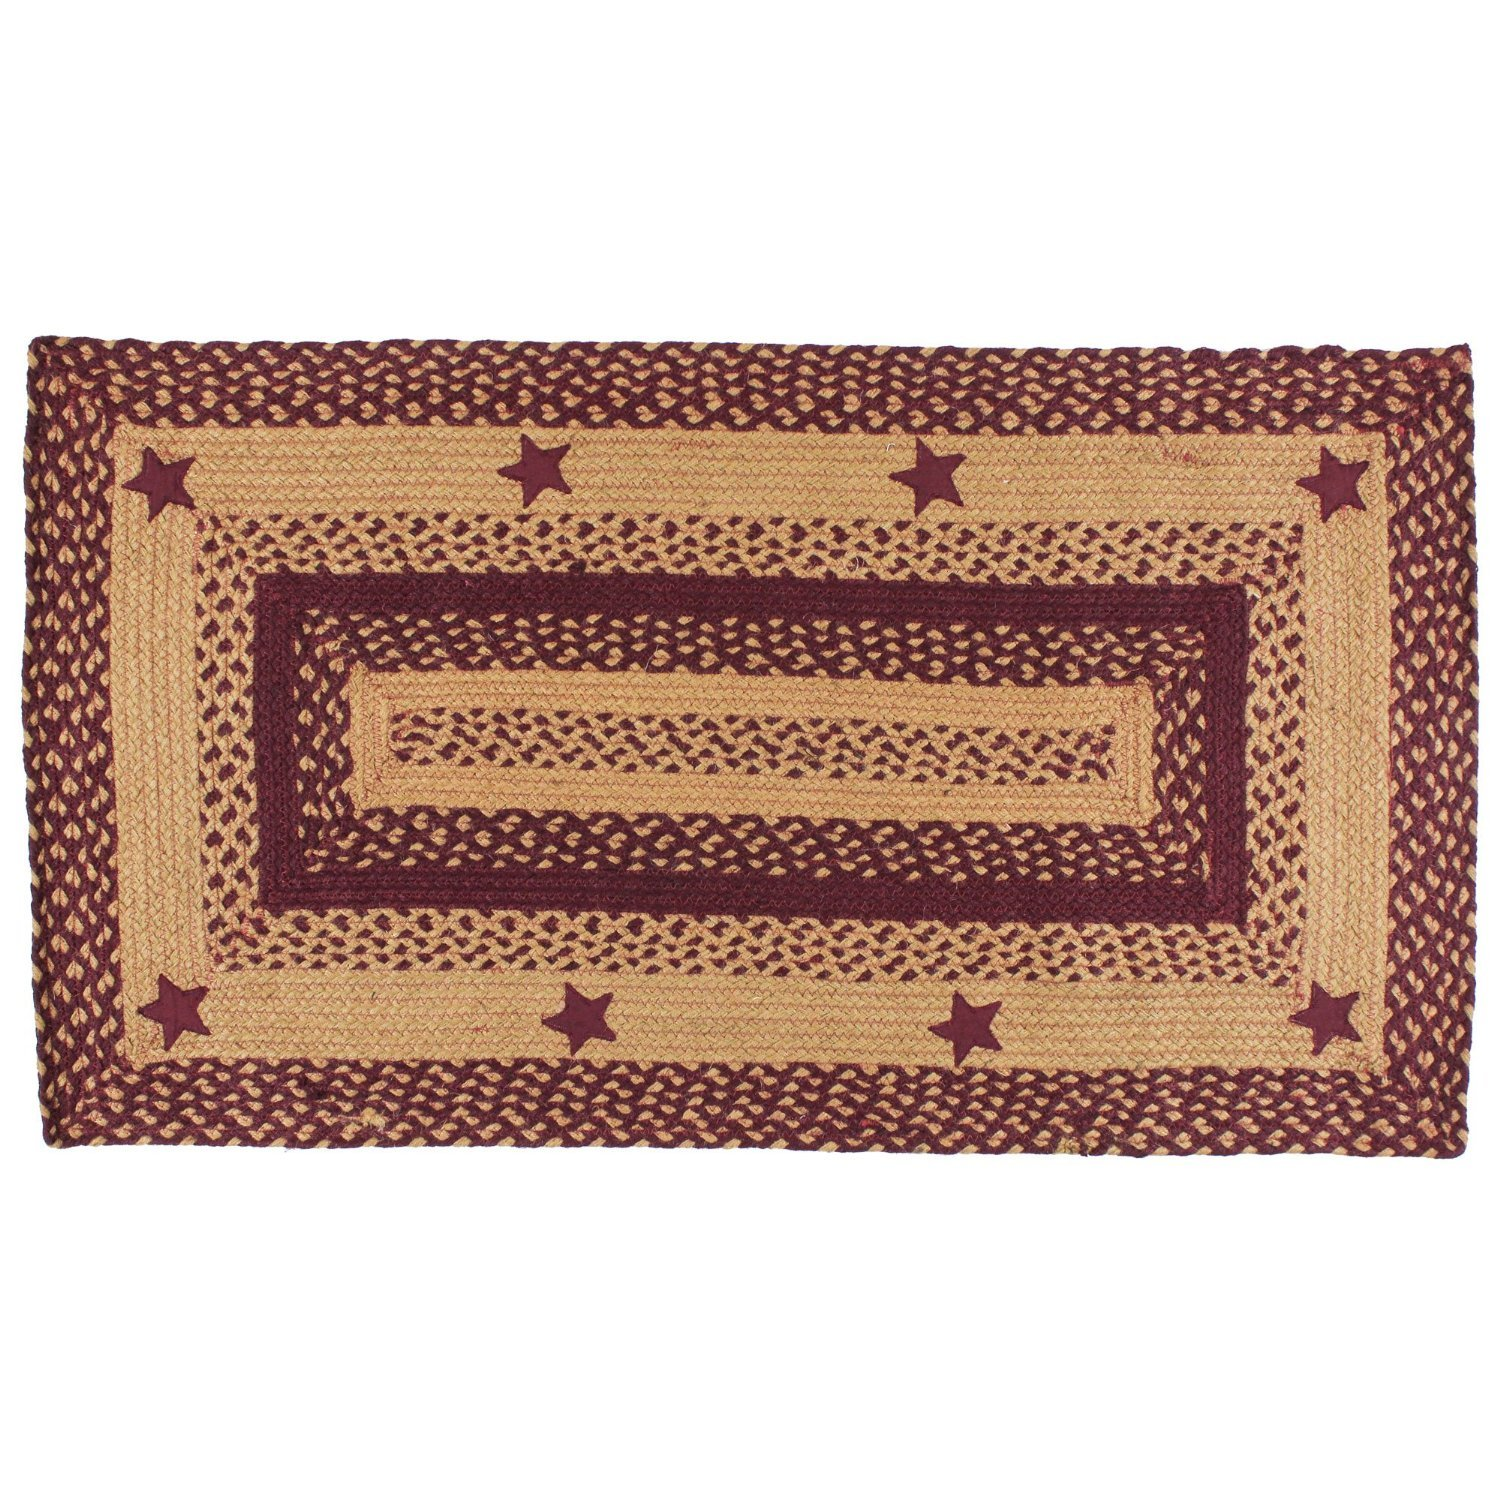 IHF Home Decor Star Wine Rectangle Jute Braided Area Rug Floor Carpet 22 x 72 Inch India Home Fashions BR-195 2272R